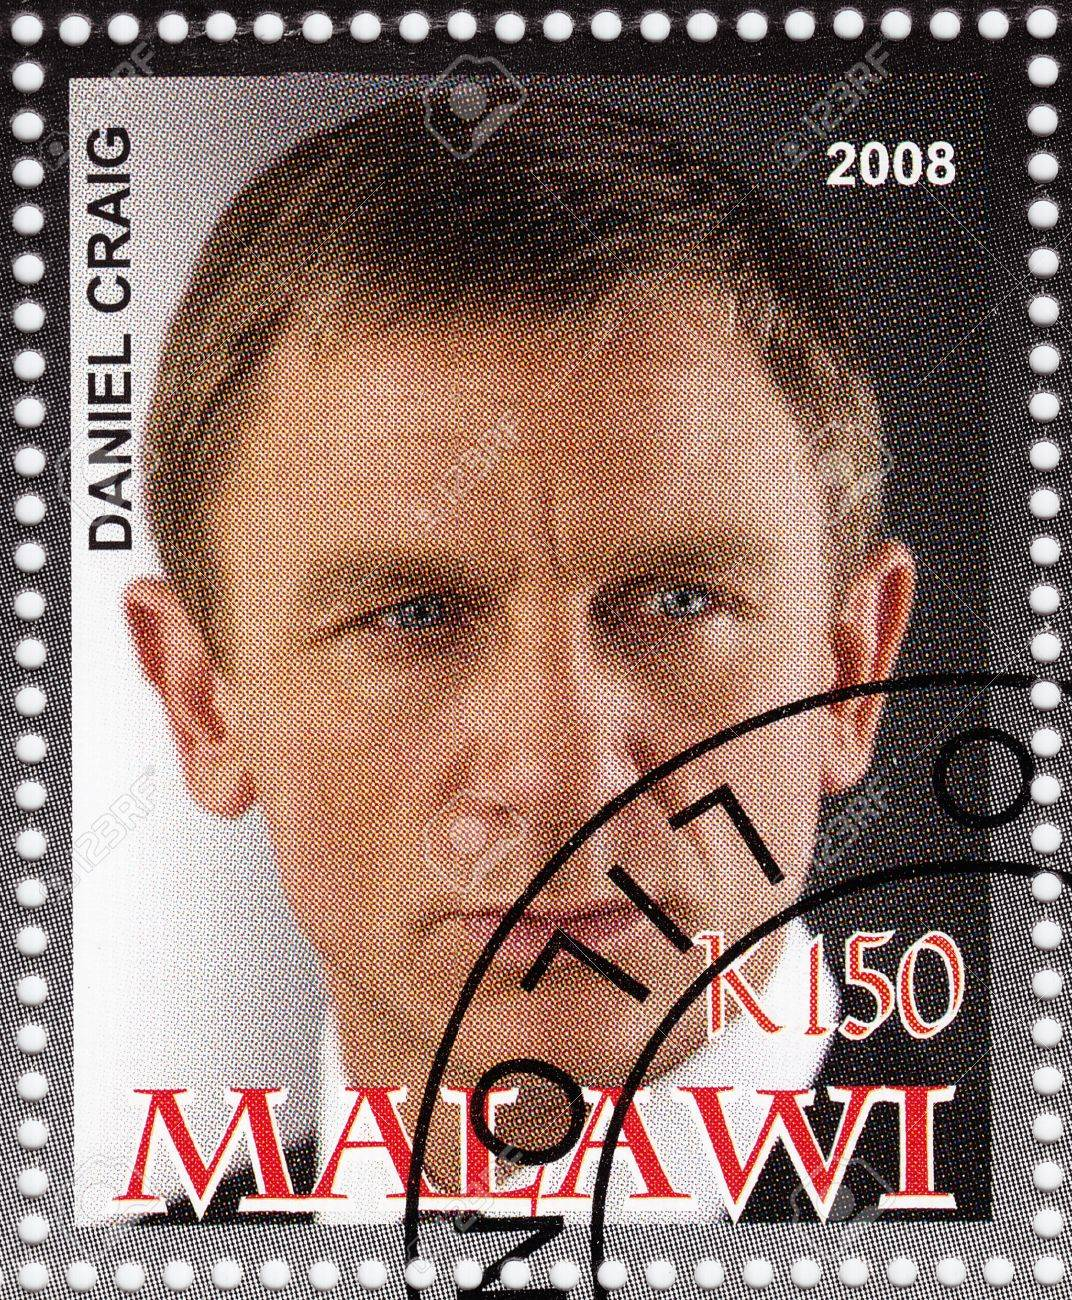 MALAWI - CIRCA 2008  stamp printed in Malawi with Daniel Craig - English actor and film producer,sixth actor to portray the fictional secret agent James Bond, circa 2008 Stock Photo - 16586030